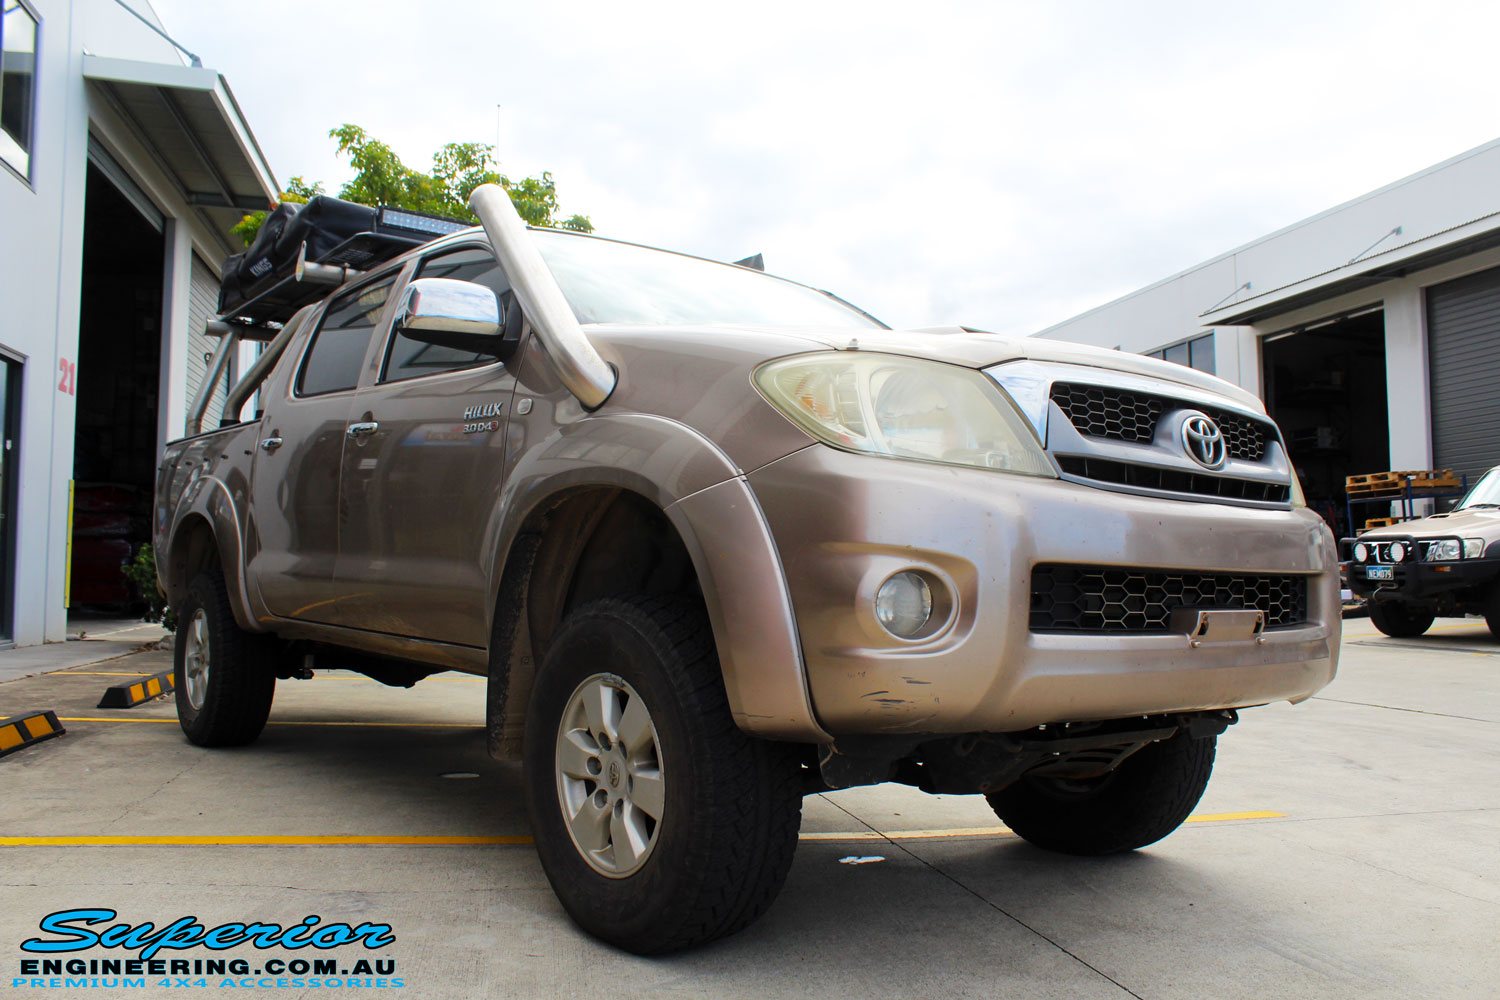 "Right front side view of a Toyota Vigo Hilux Dual Cab after fitment of a Superior Nitro Gas 3"" Inch Lift Kit"